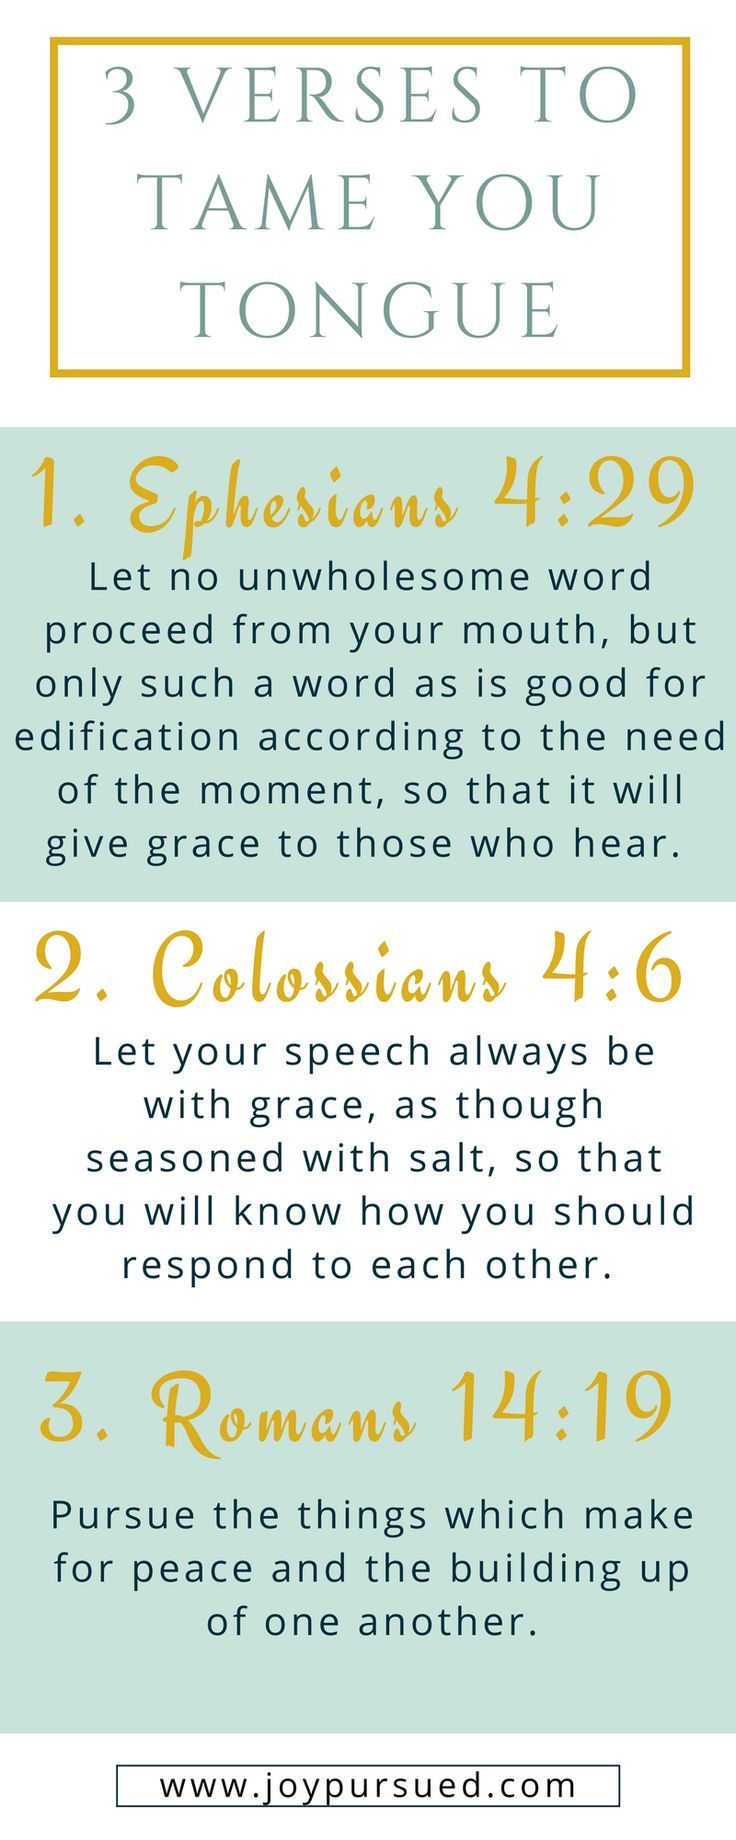 Does your tongue ever get the better of you? This post shares how praying 3 verses can help you tame your tongue. Click through to read the whole post.